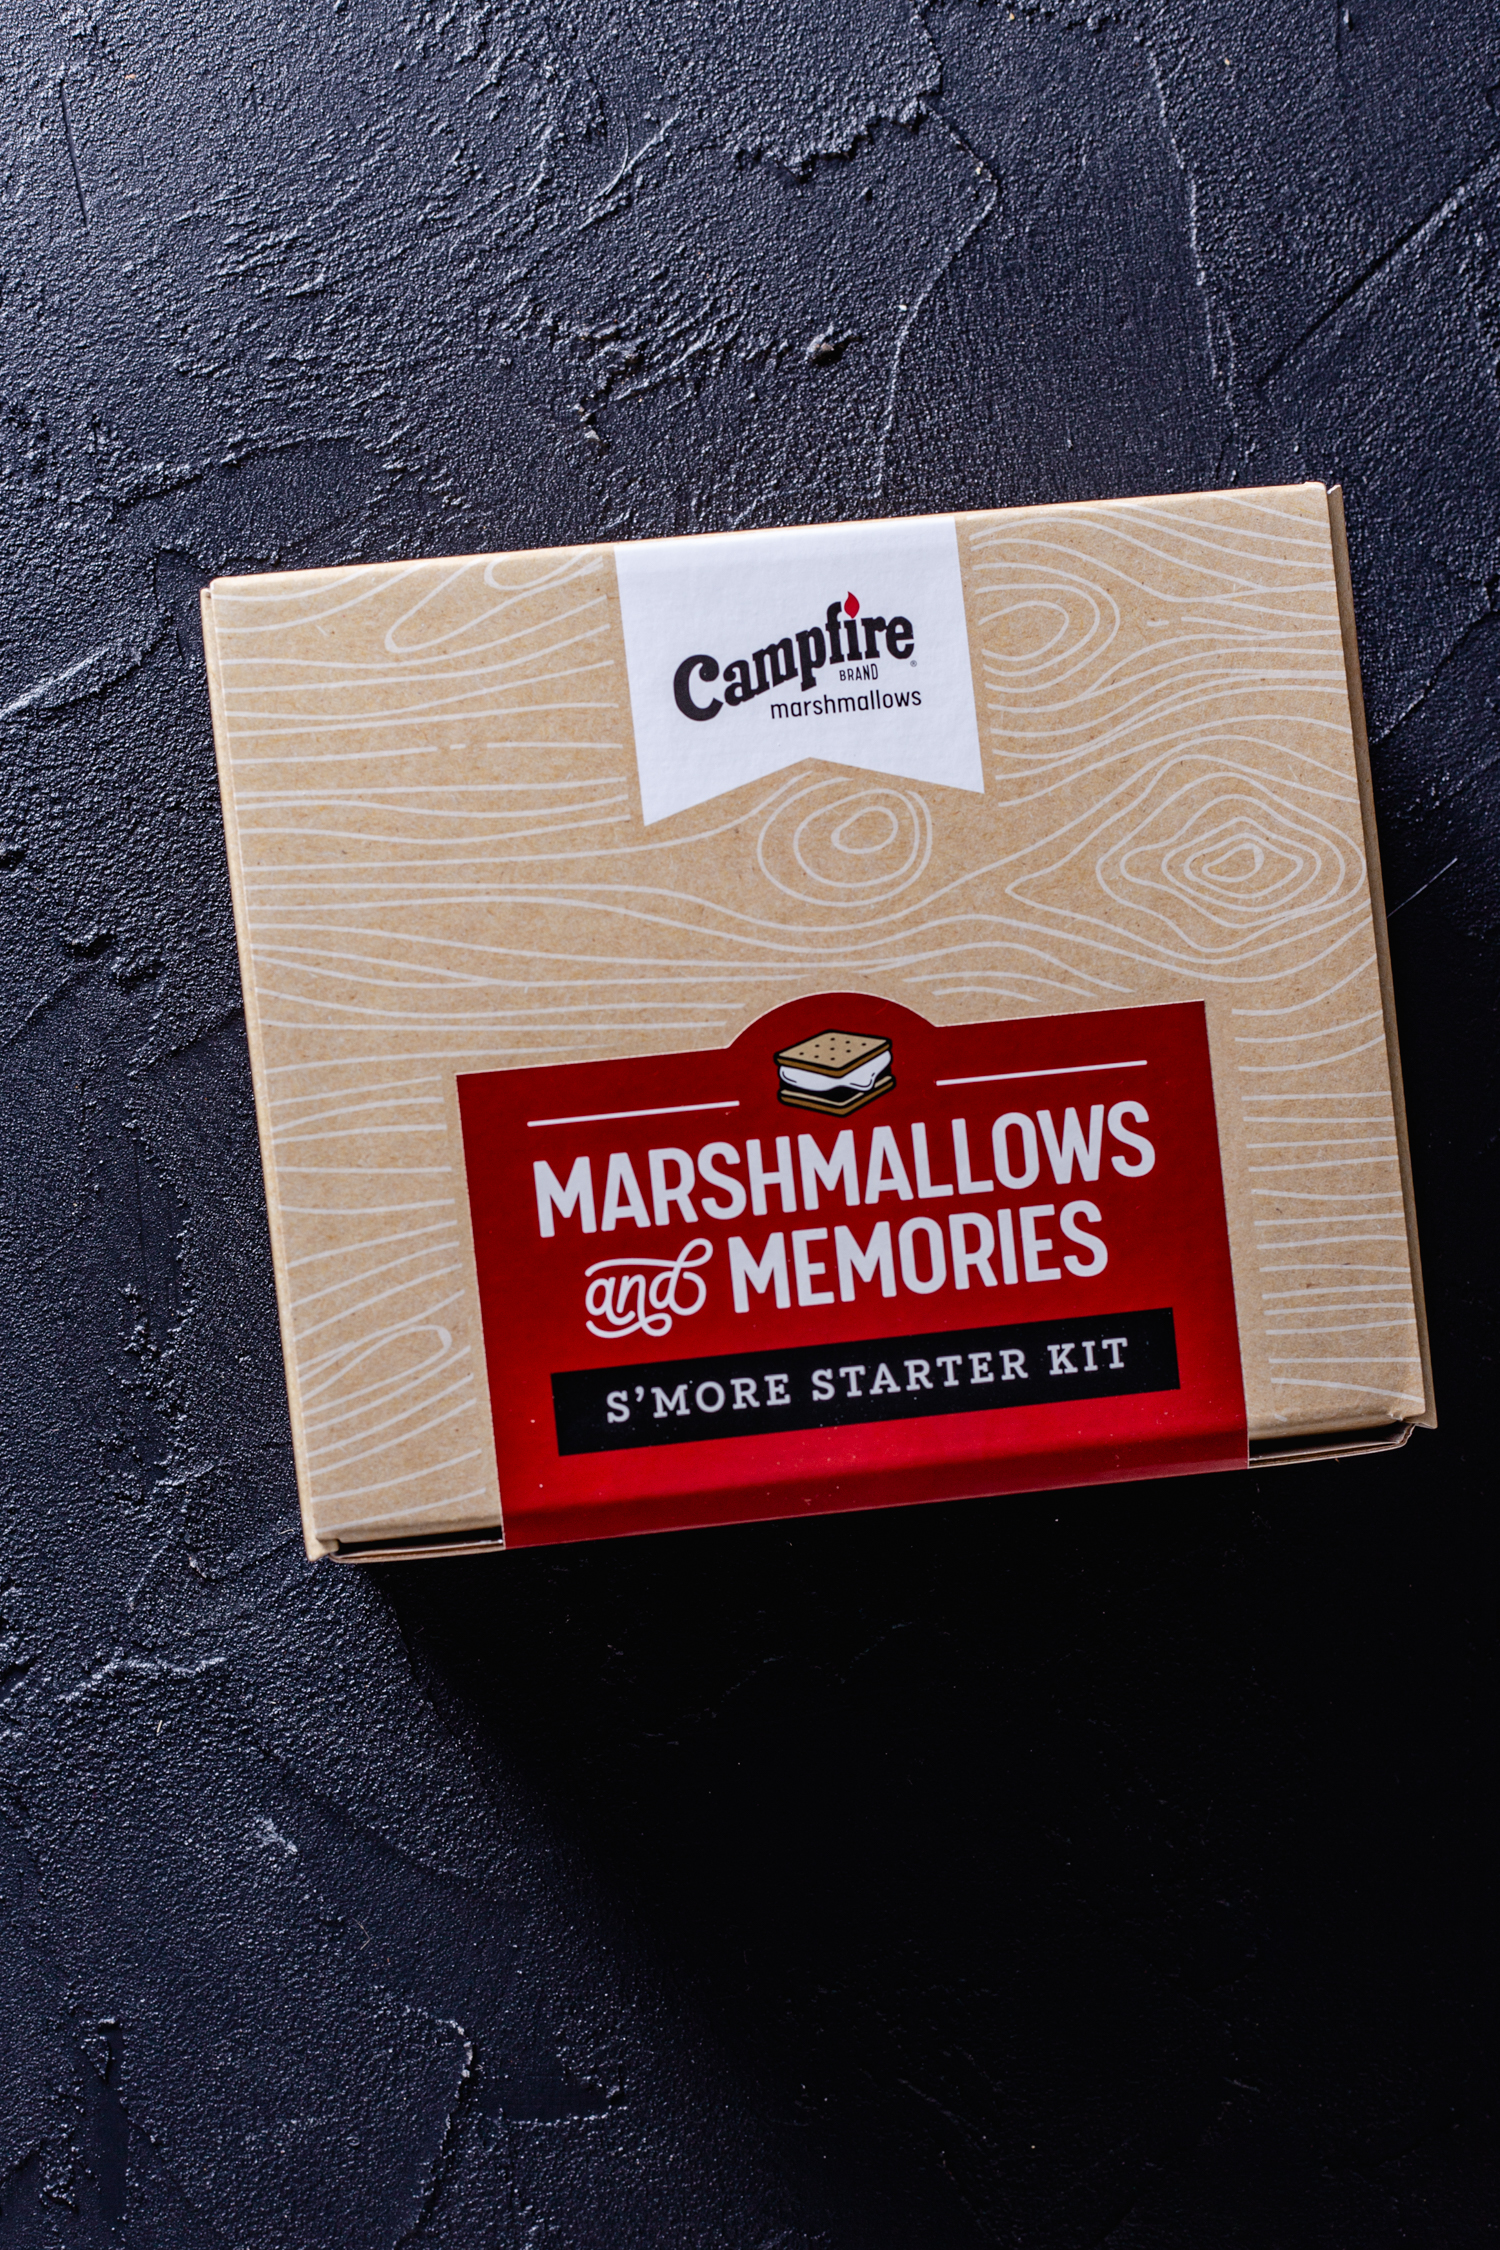 Campfire Marshmallows Smores Starter Kit